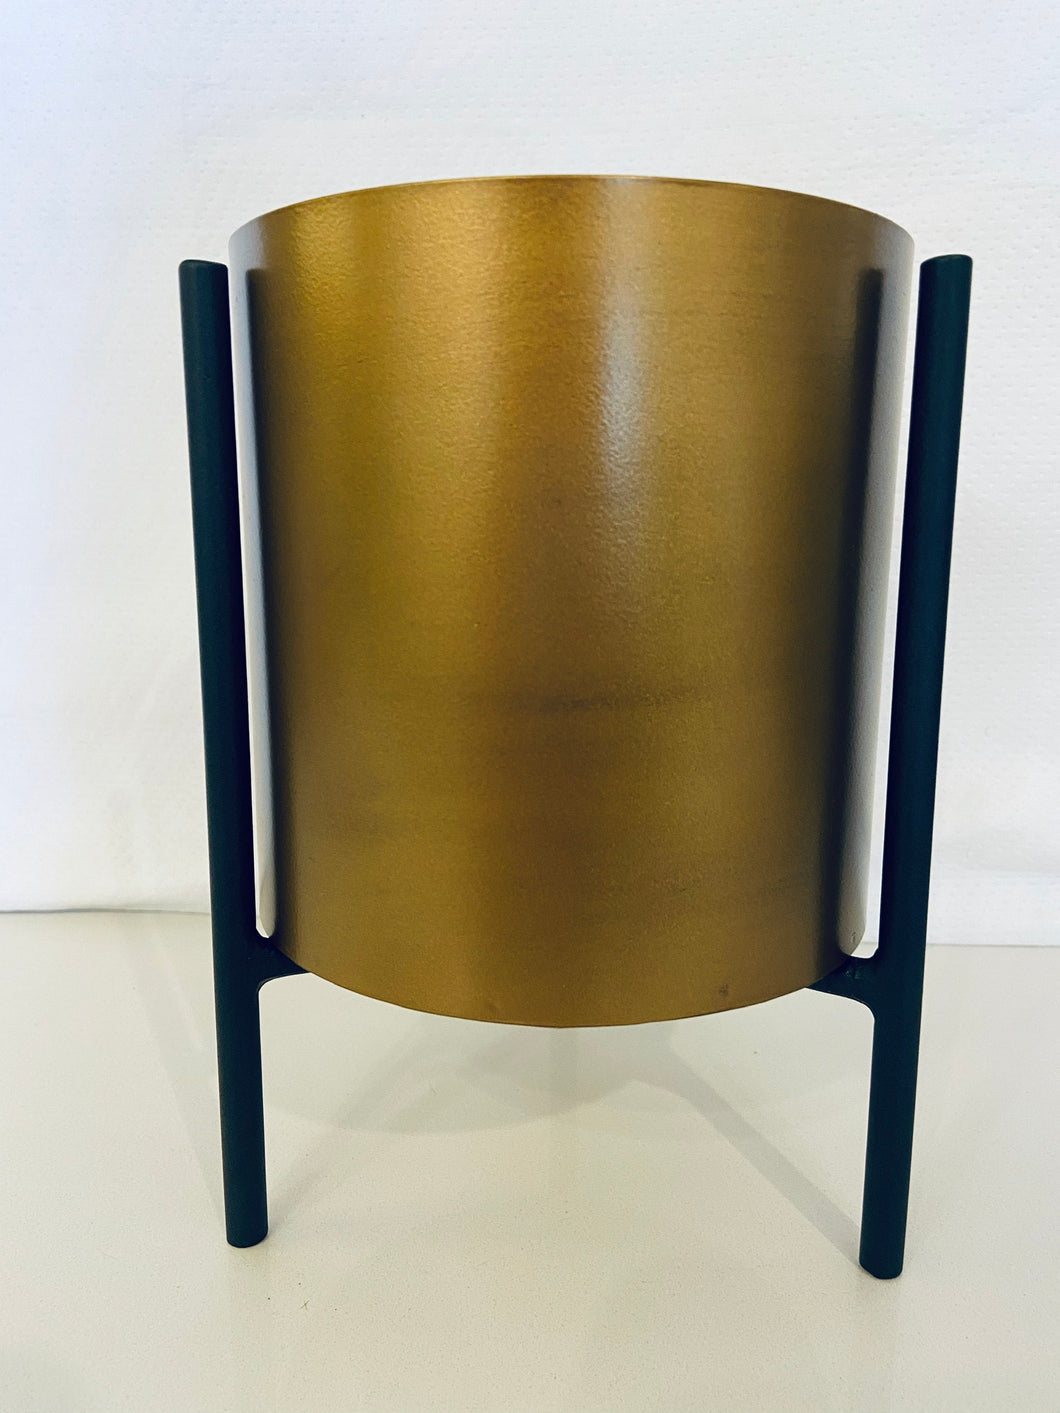 Gold Planter with Black Stand